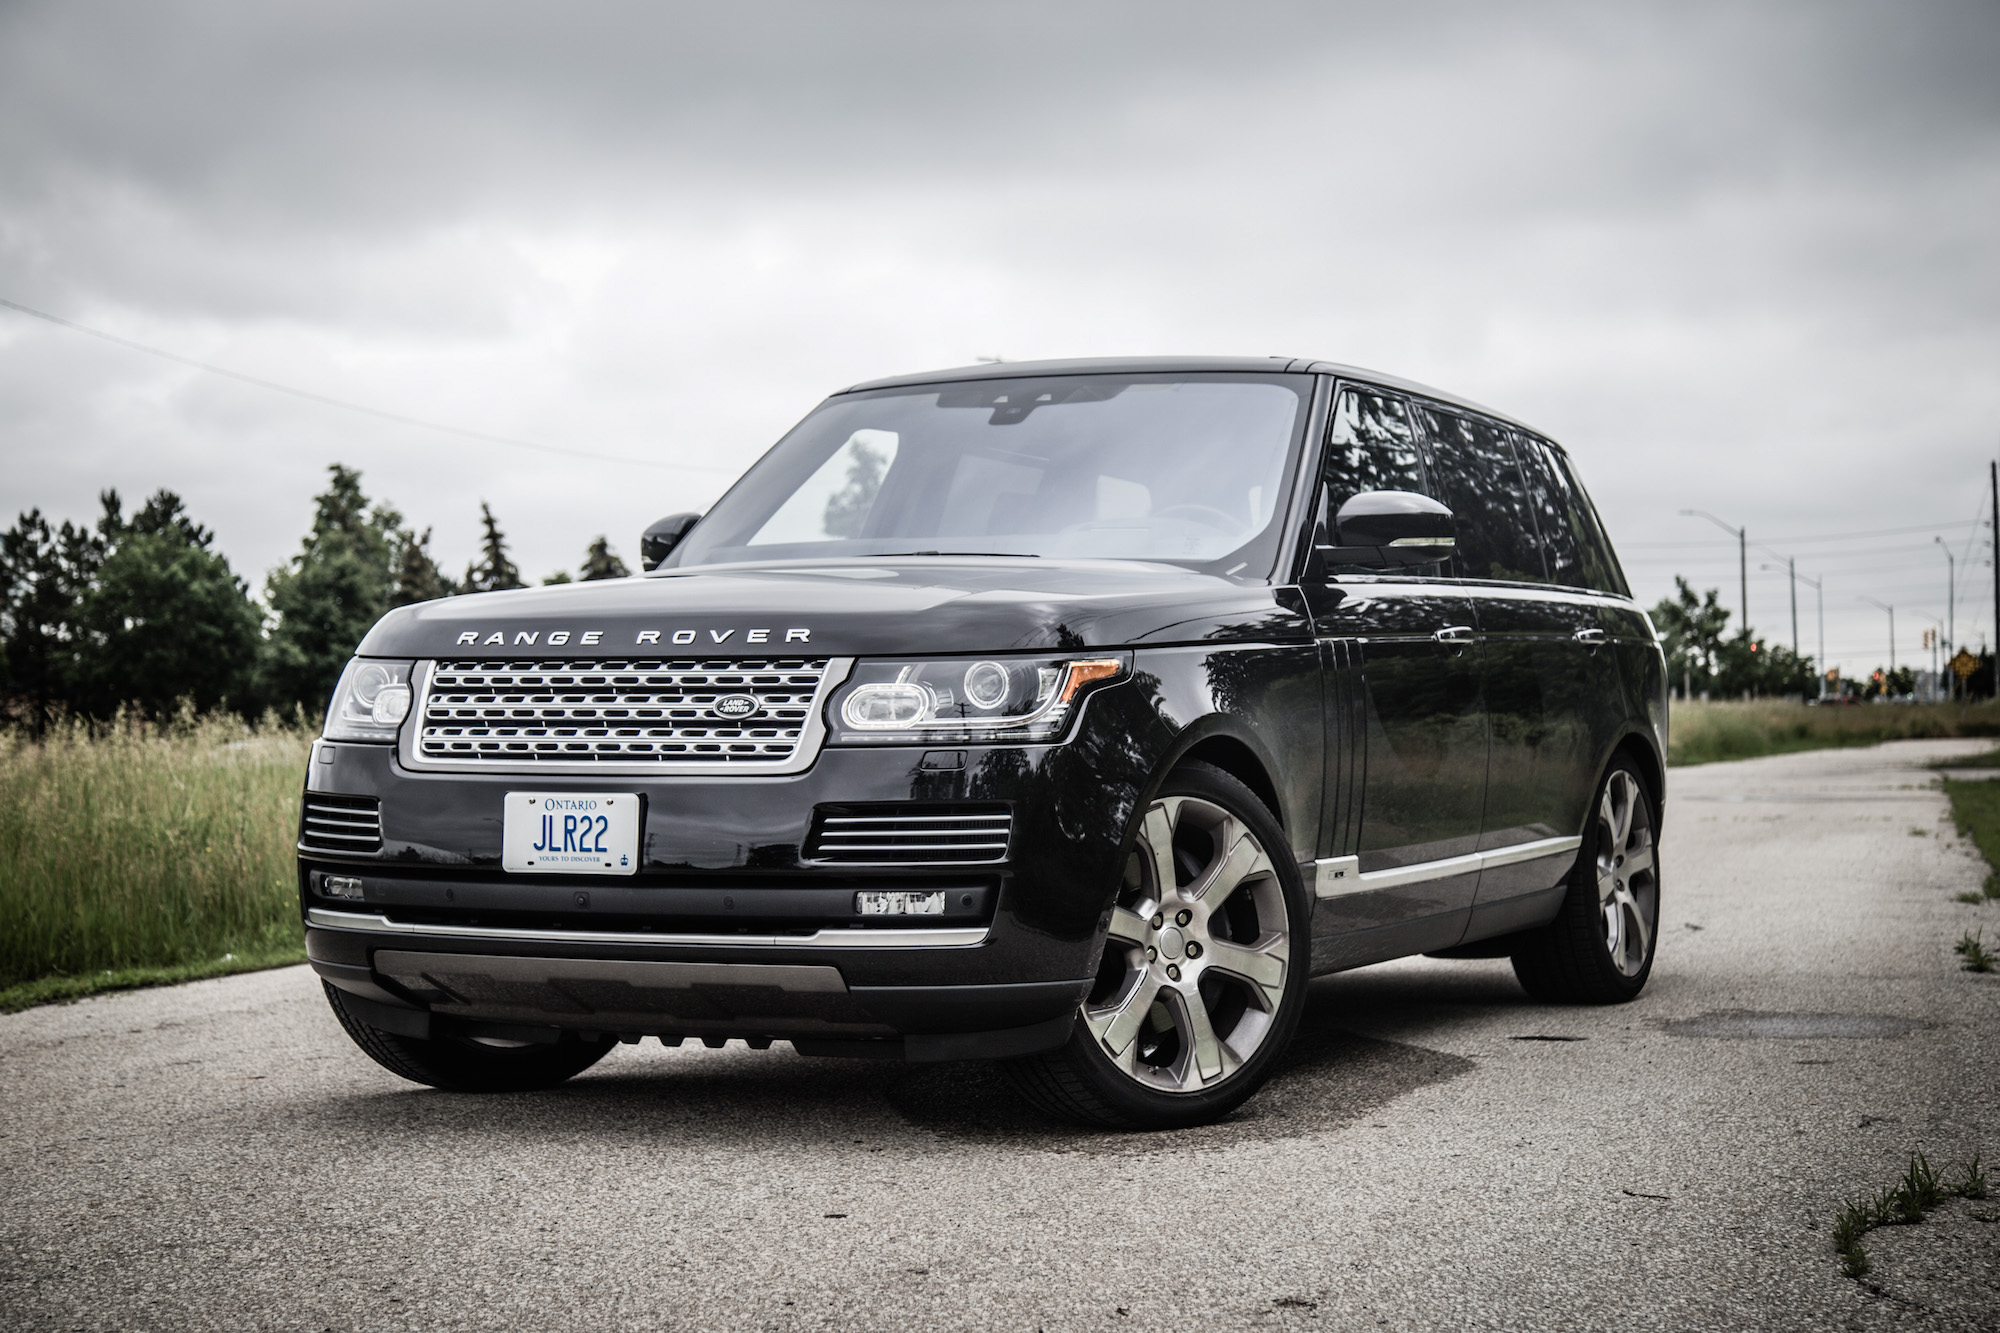 Range Rover Autobiography >> Review: 2017 Range Rover LWB Autobiography | Canadian Auto Review